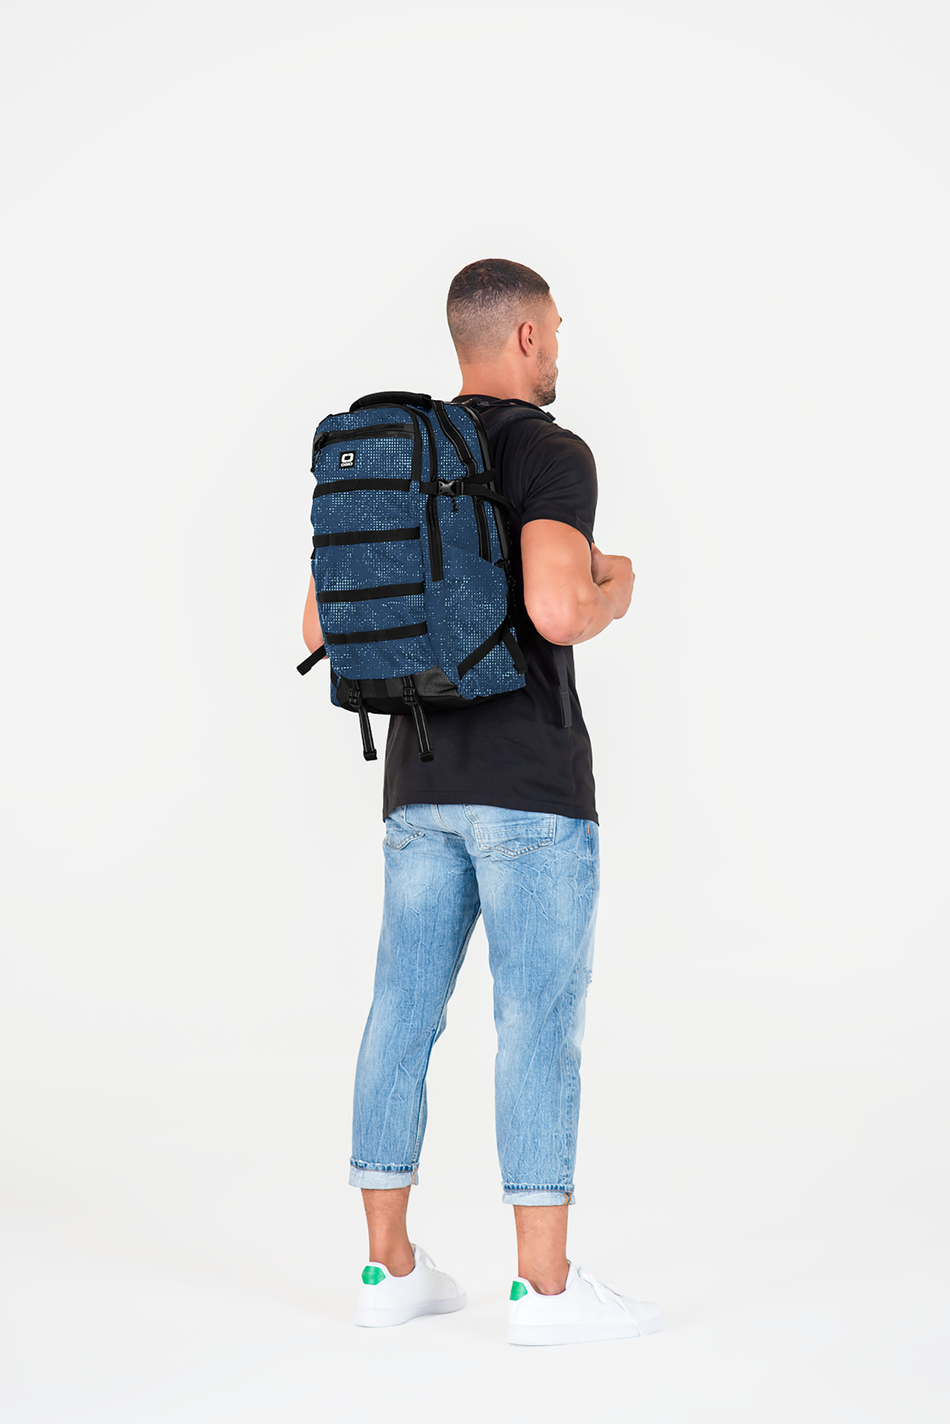 ALPHA Convoy 525 Backpack - View 12